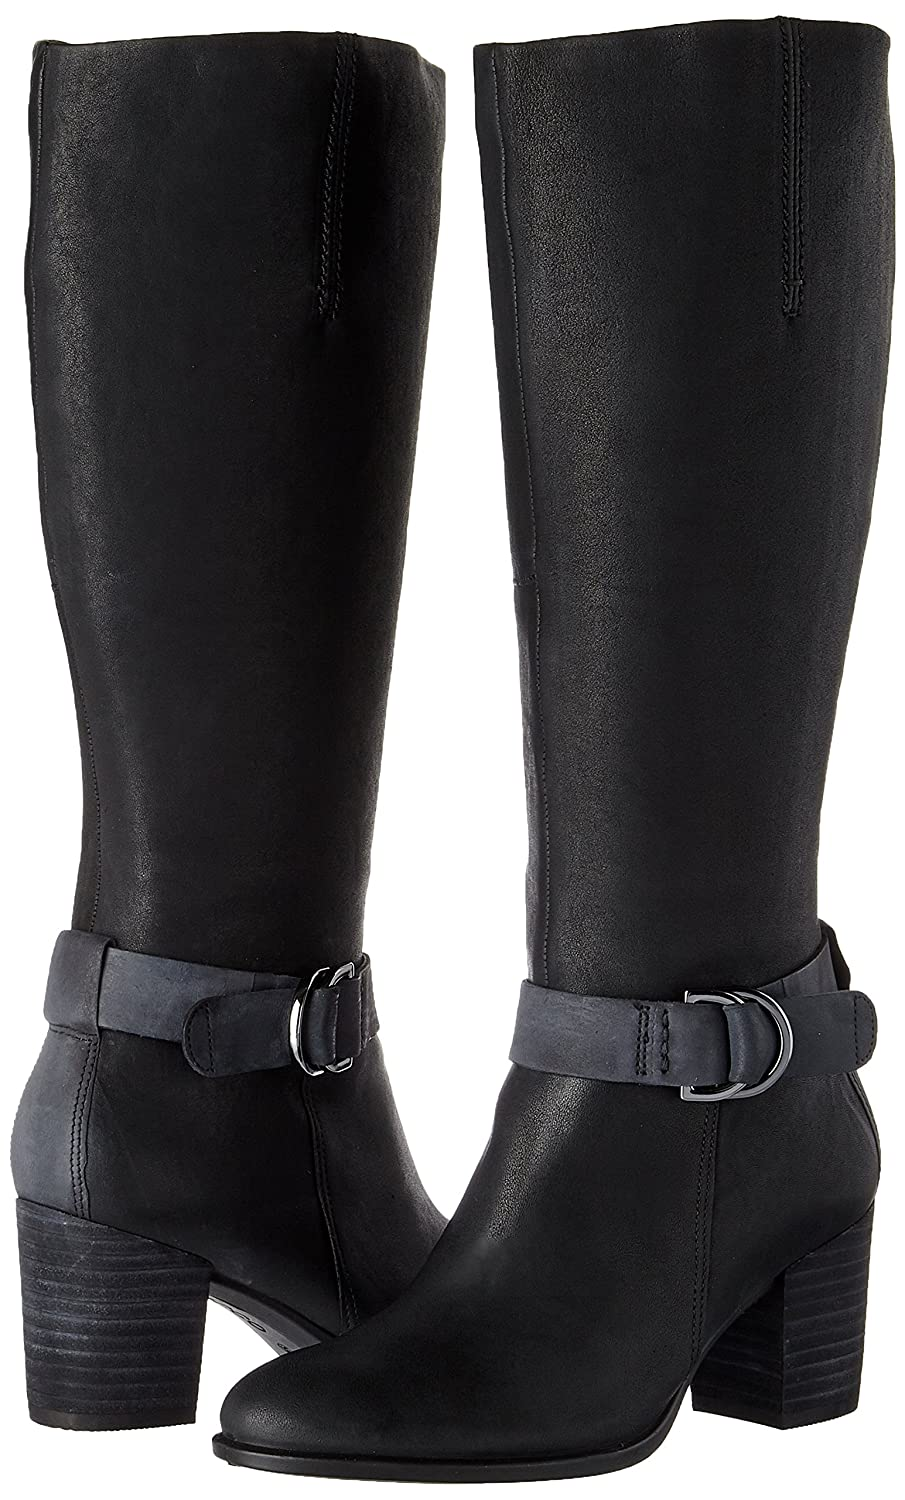 ECCO Women's Riding Women's Shape 55 Tall Riding Women's Boot B01N7VT1TB 40 EU / 9-9.5 US|Black/Black 78c5d9